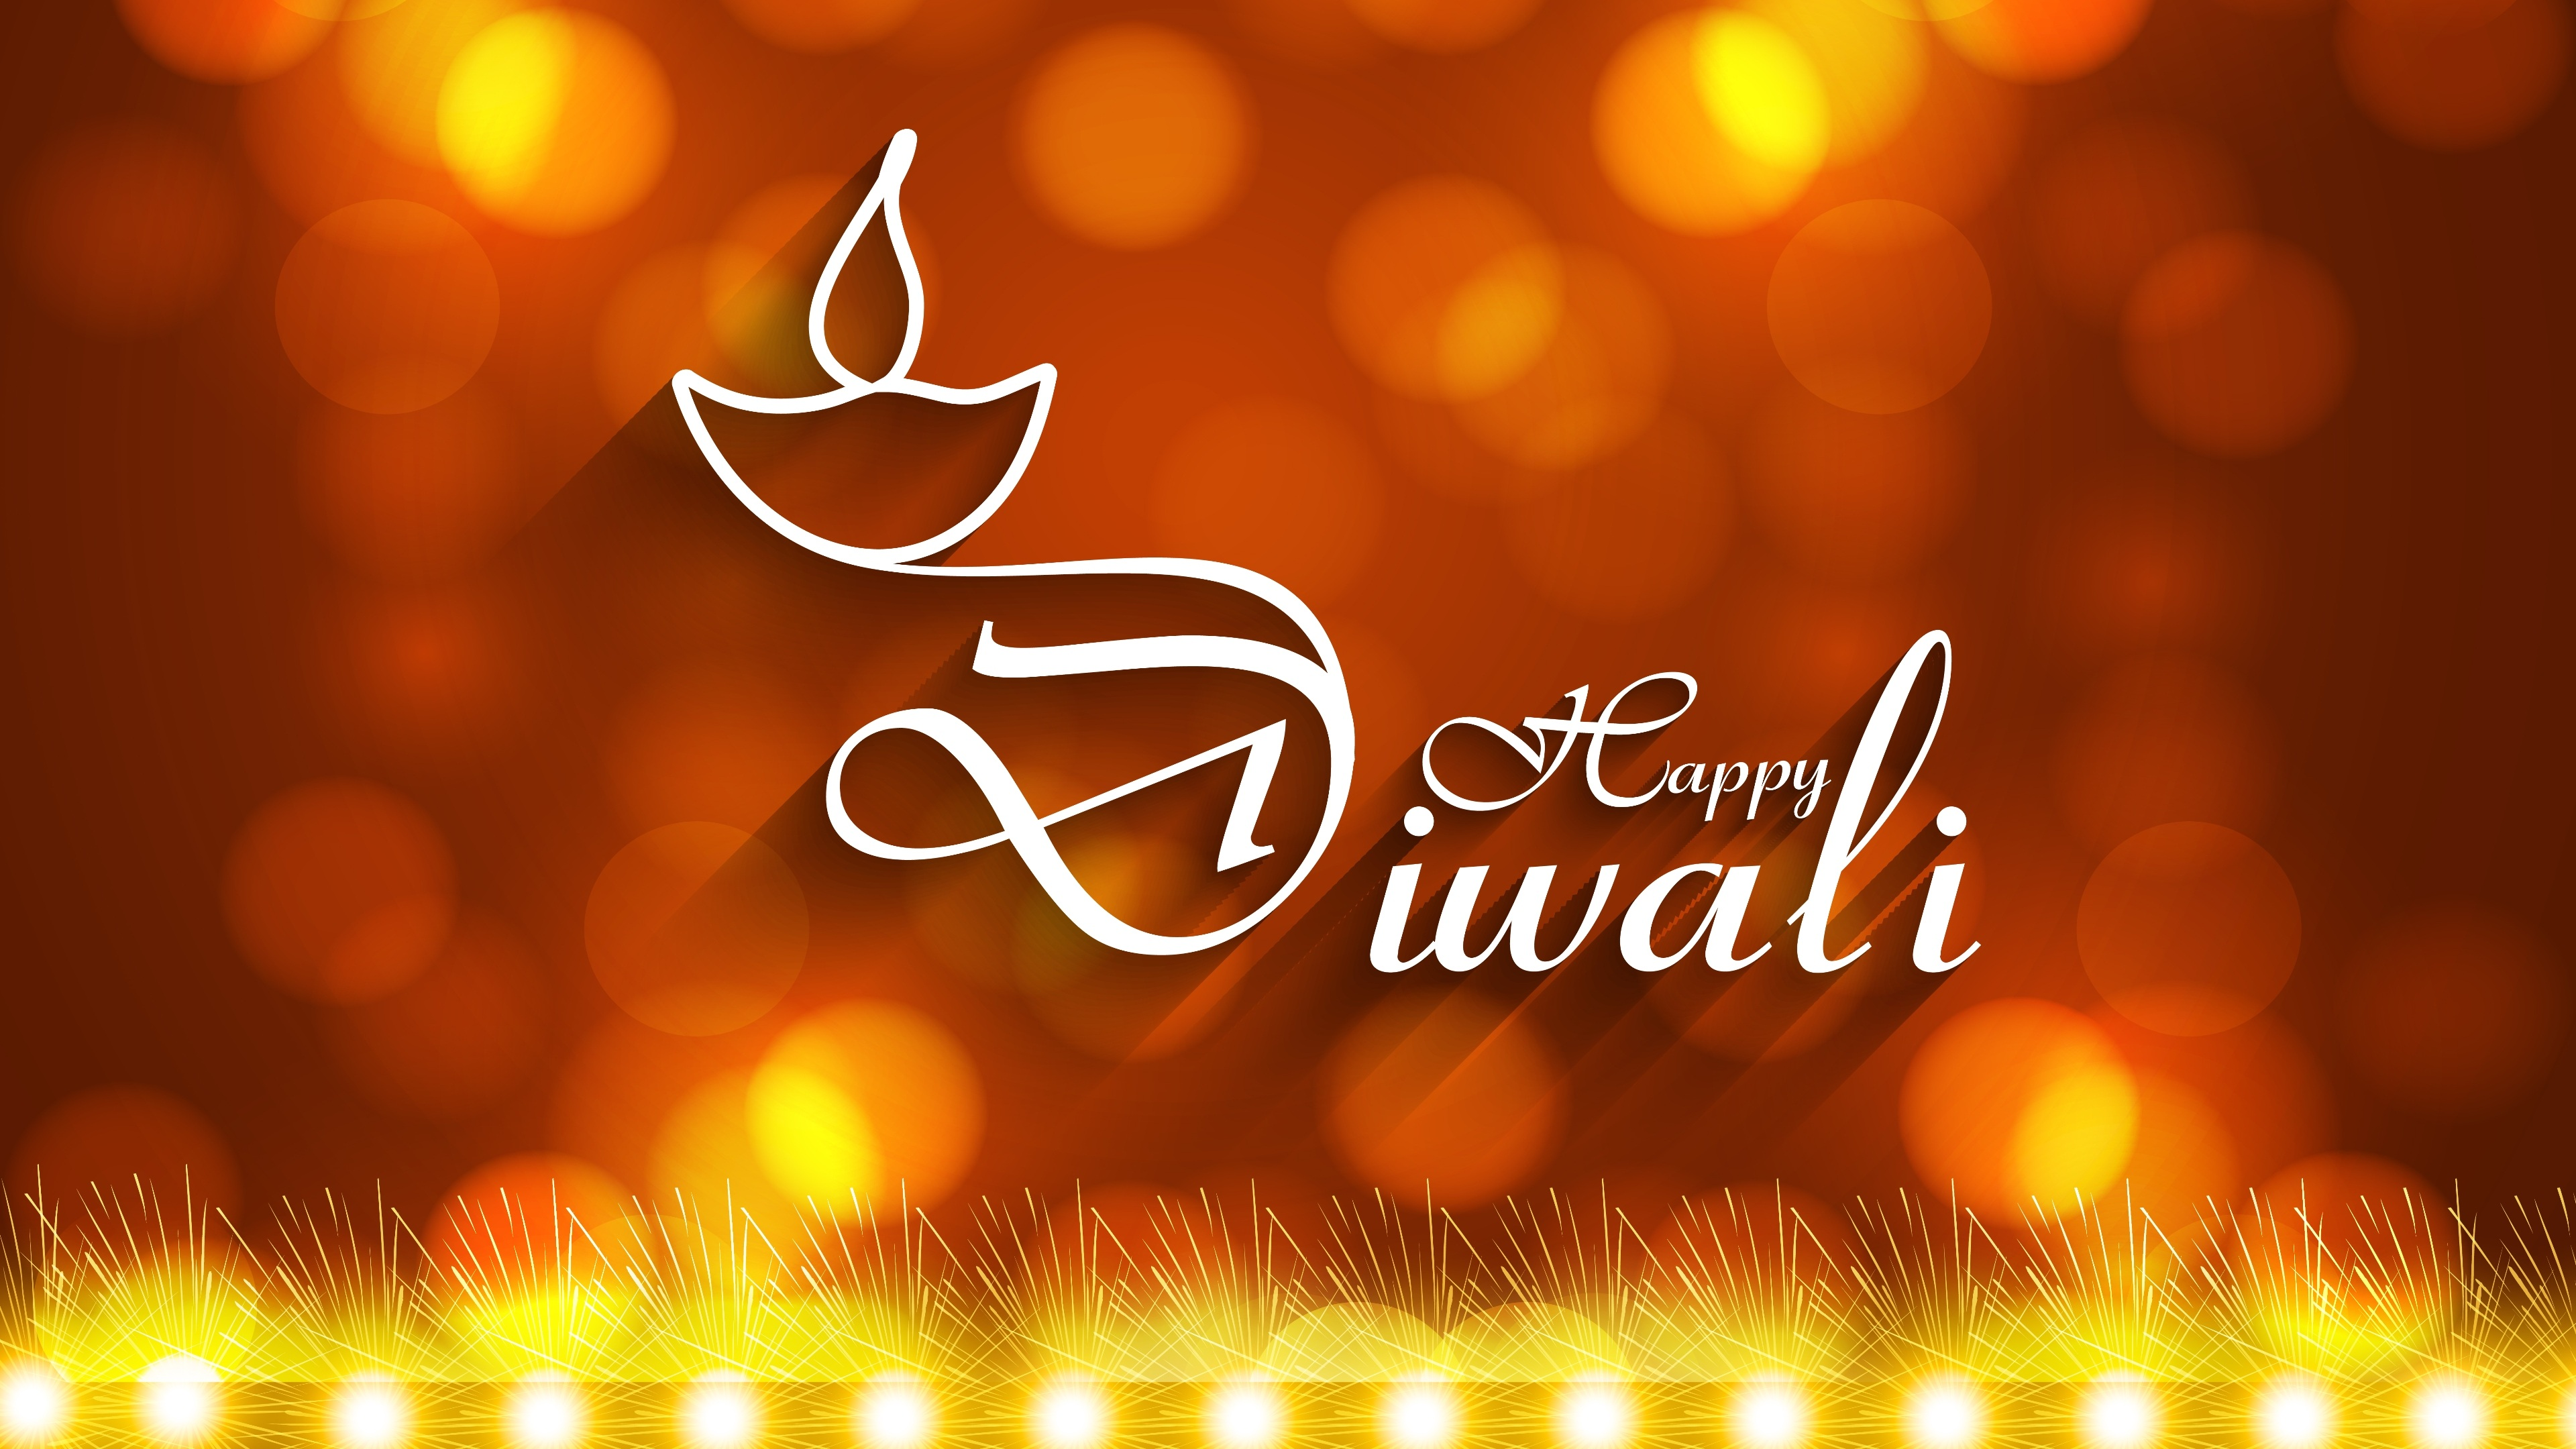 Download happy diwali hd wallpapers gallery - Hd wallpaper happy diwali ...